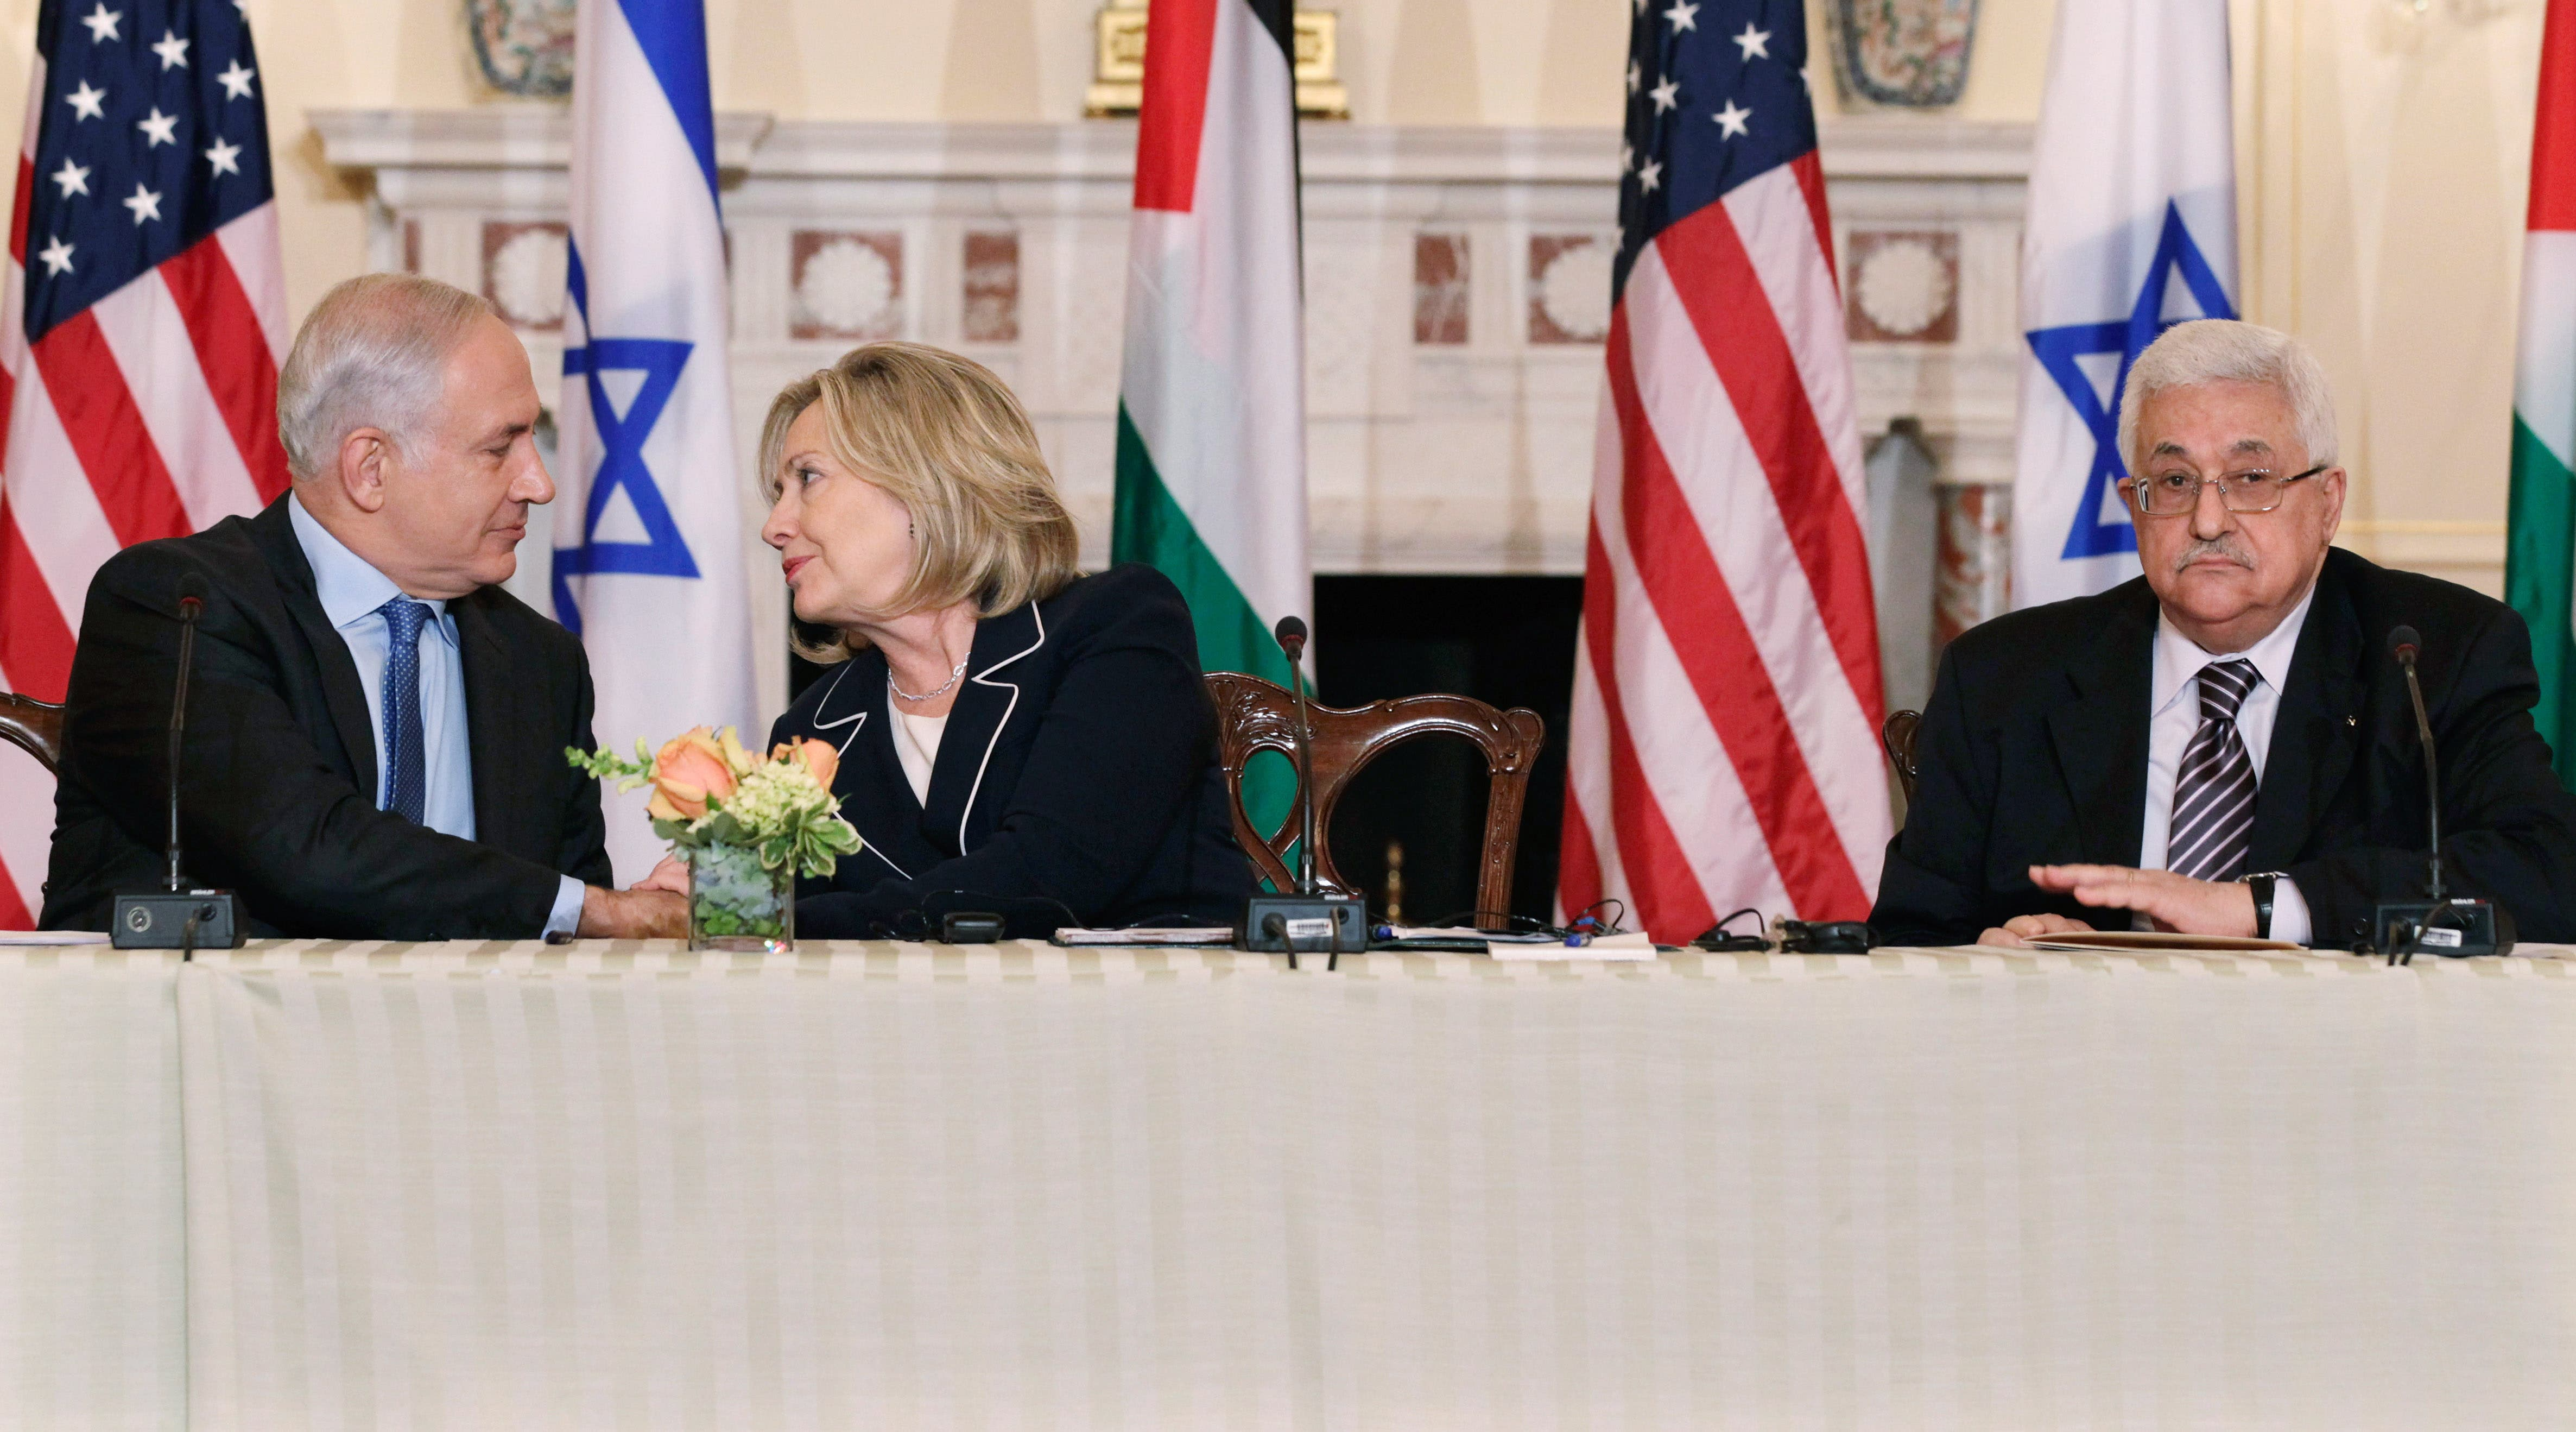 The question has been raised by many critics of the US's veto intentions: Why support the concept of a Palestinian state but not follow through by backing the bid?